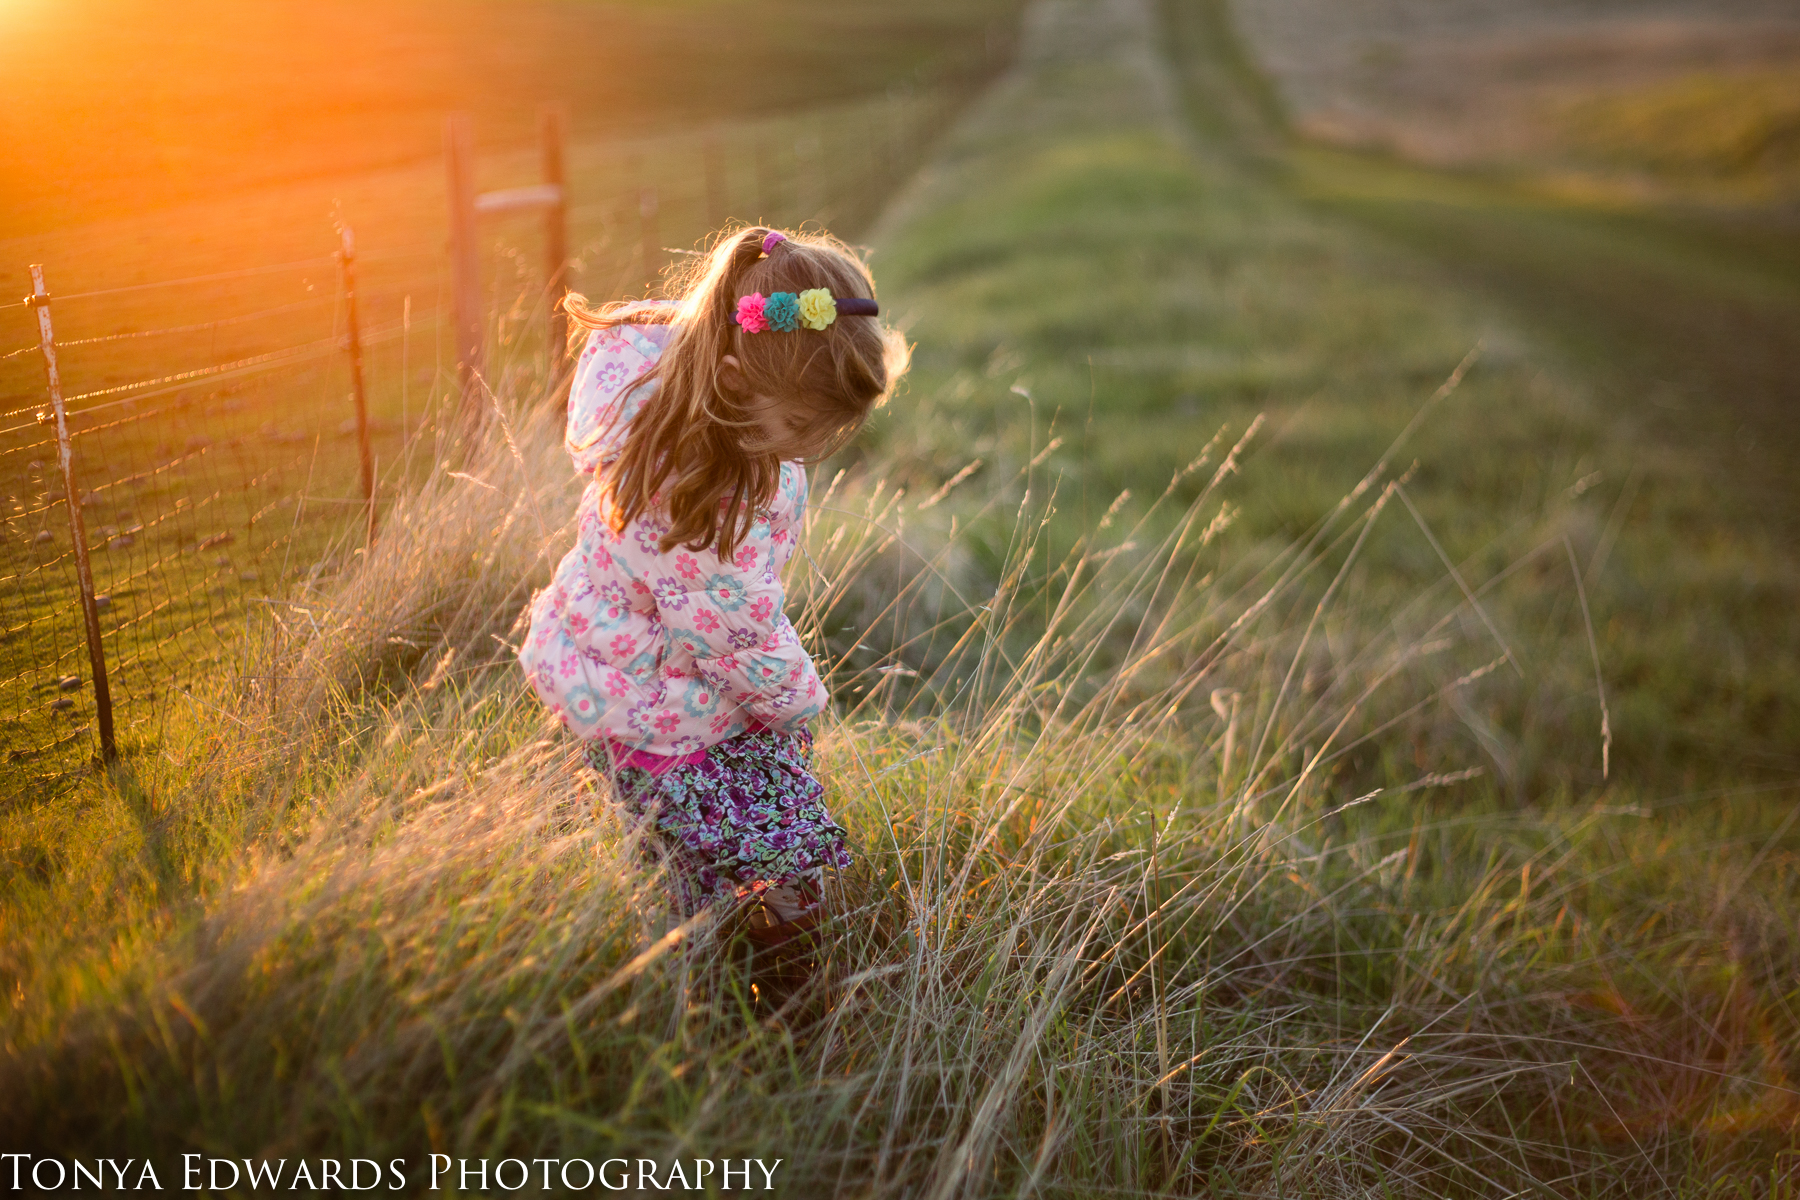 Oroville Photographer   Tonya Edwards   little girl in a pink jacket picking flowers in a field at sunset